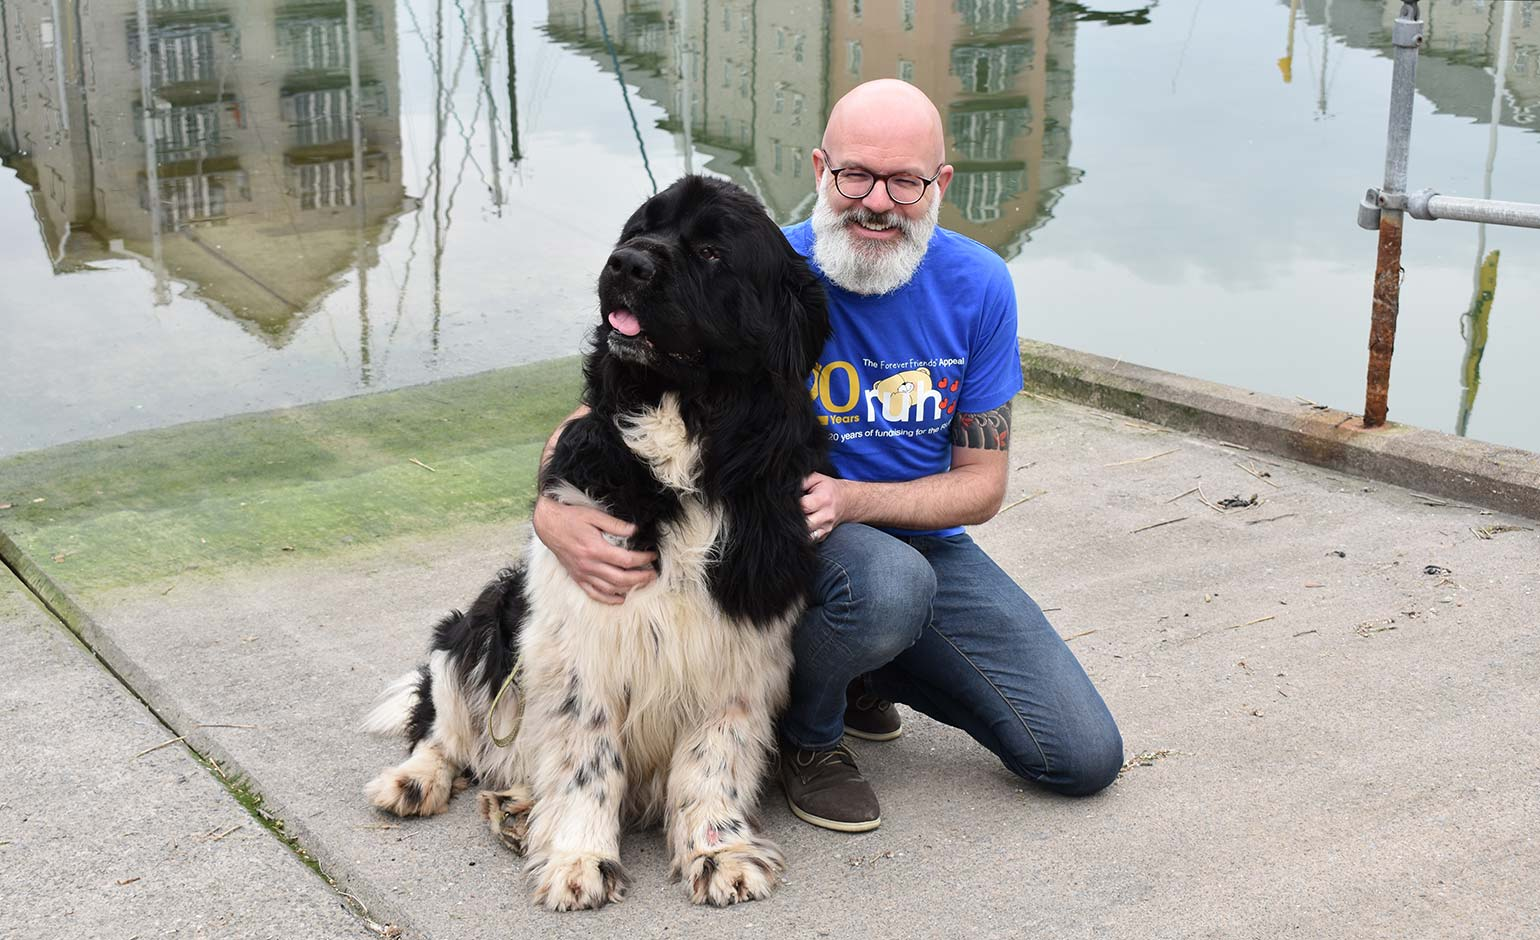 Last chance to take the plunge and be rescued by a Newfoundland dog | Bath Echo